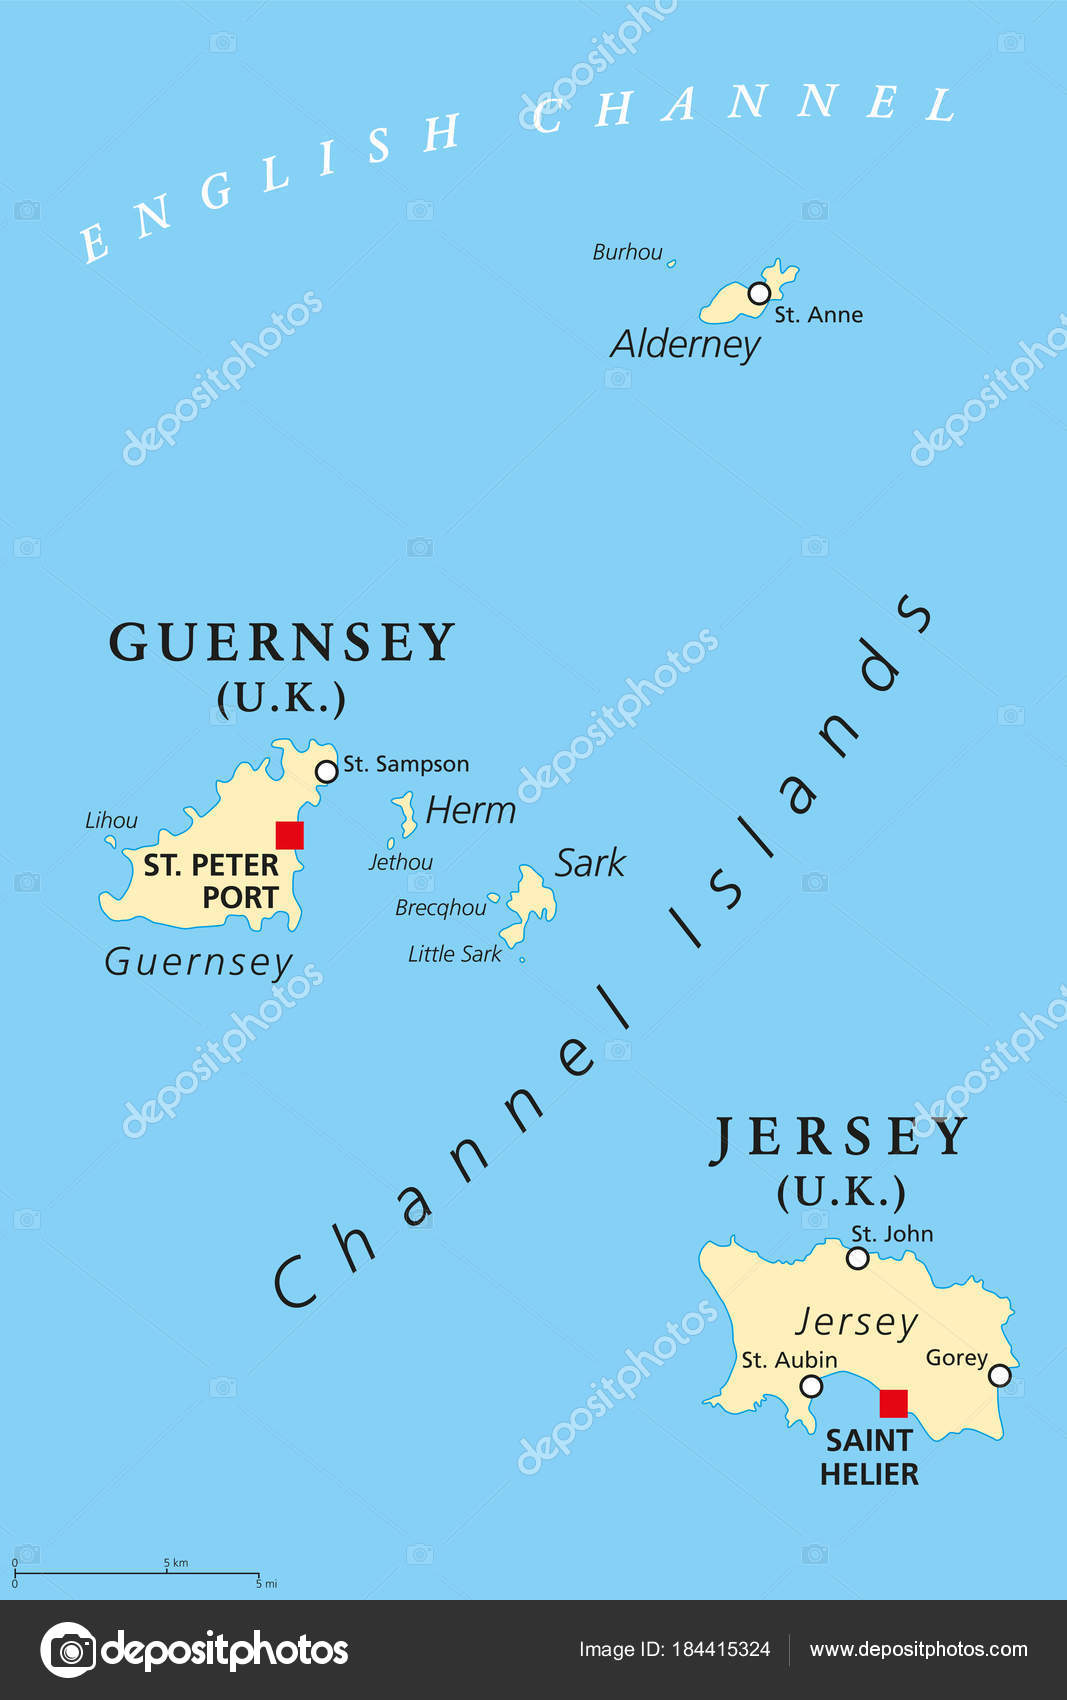 Channel Island Of Jersey Map